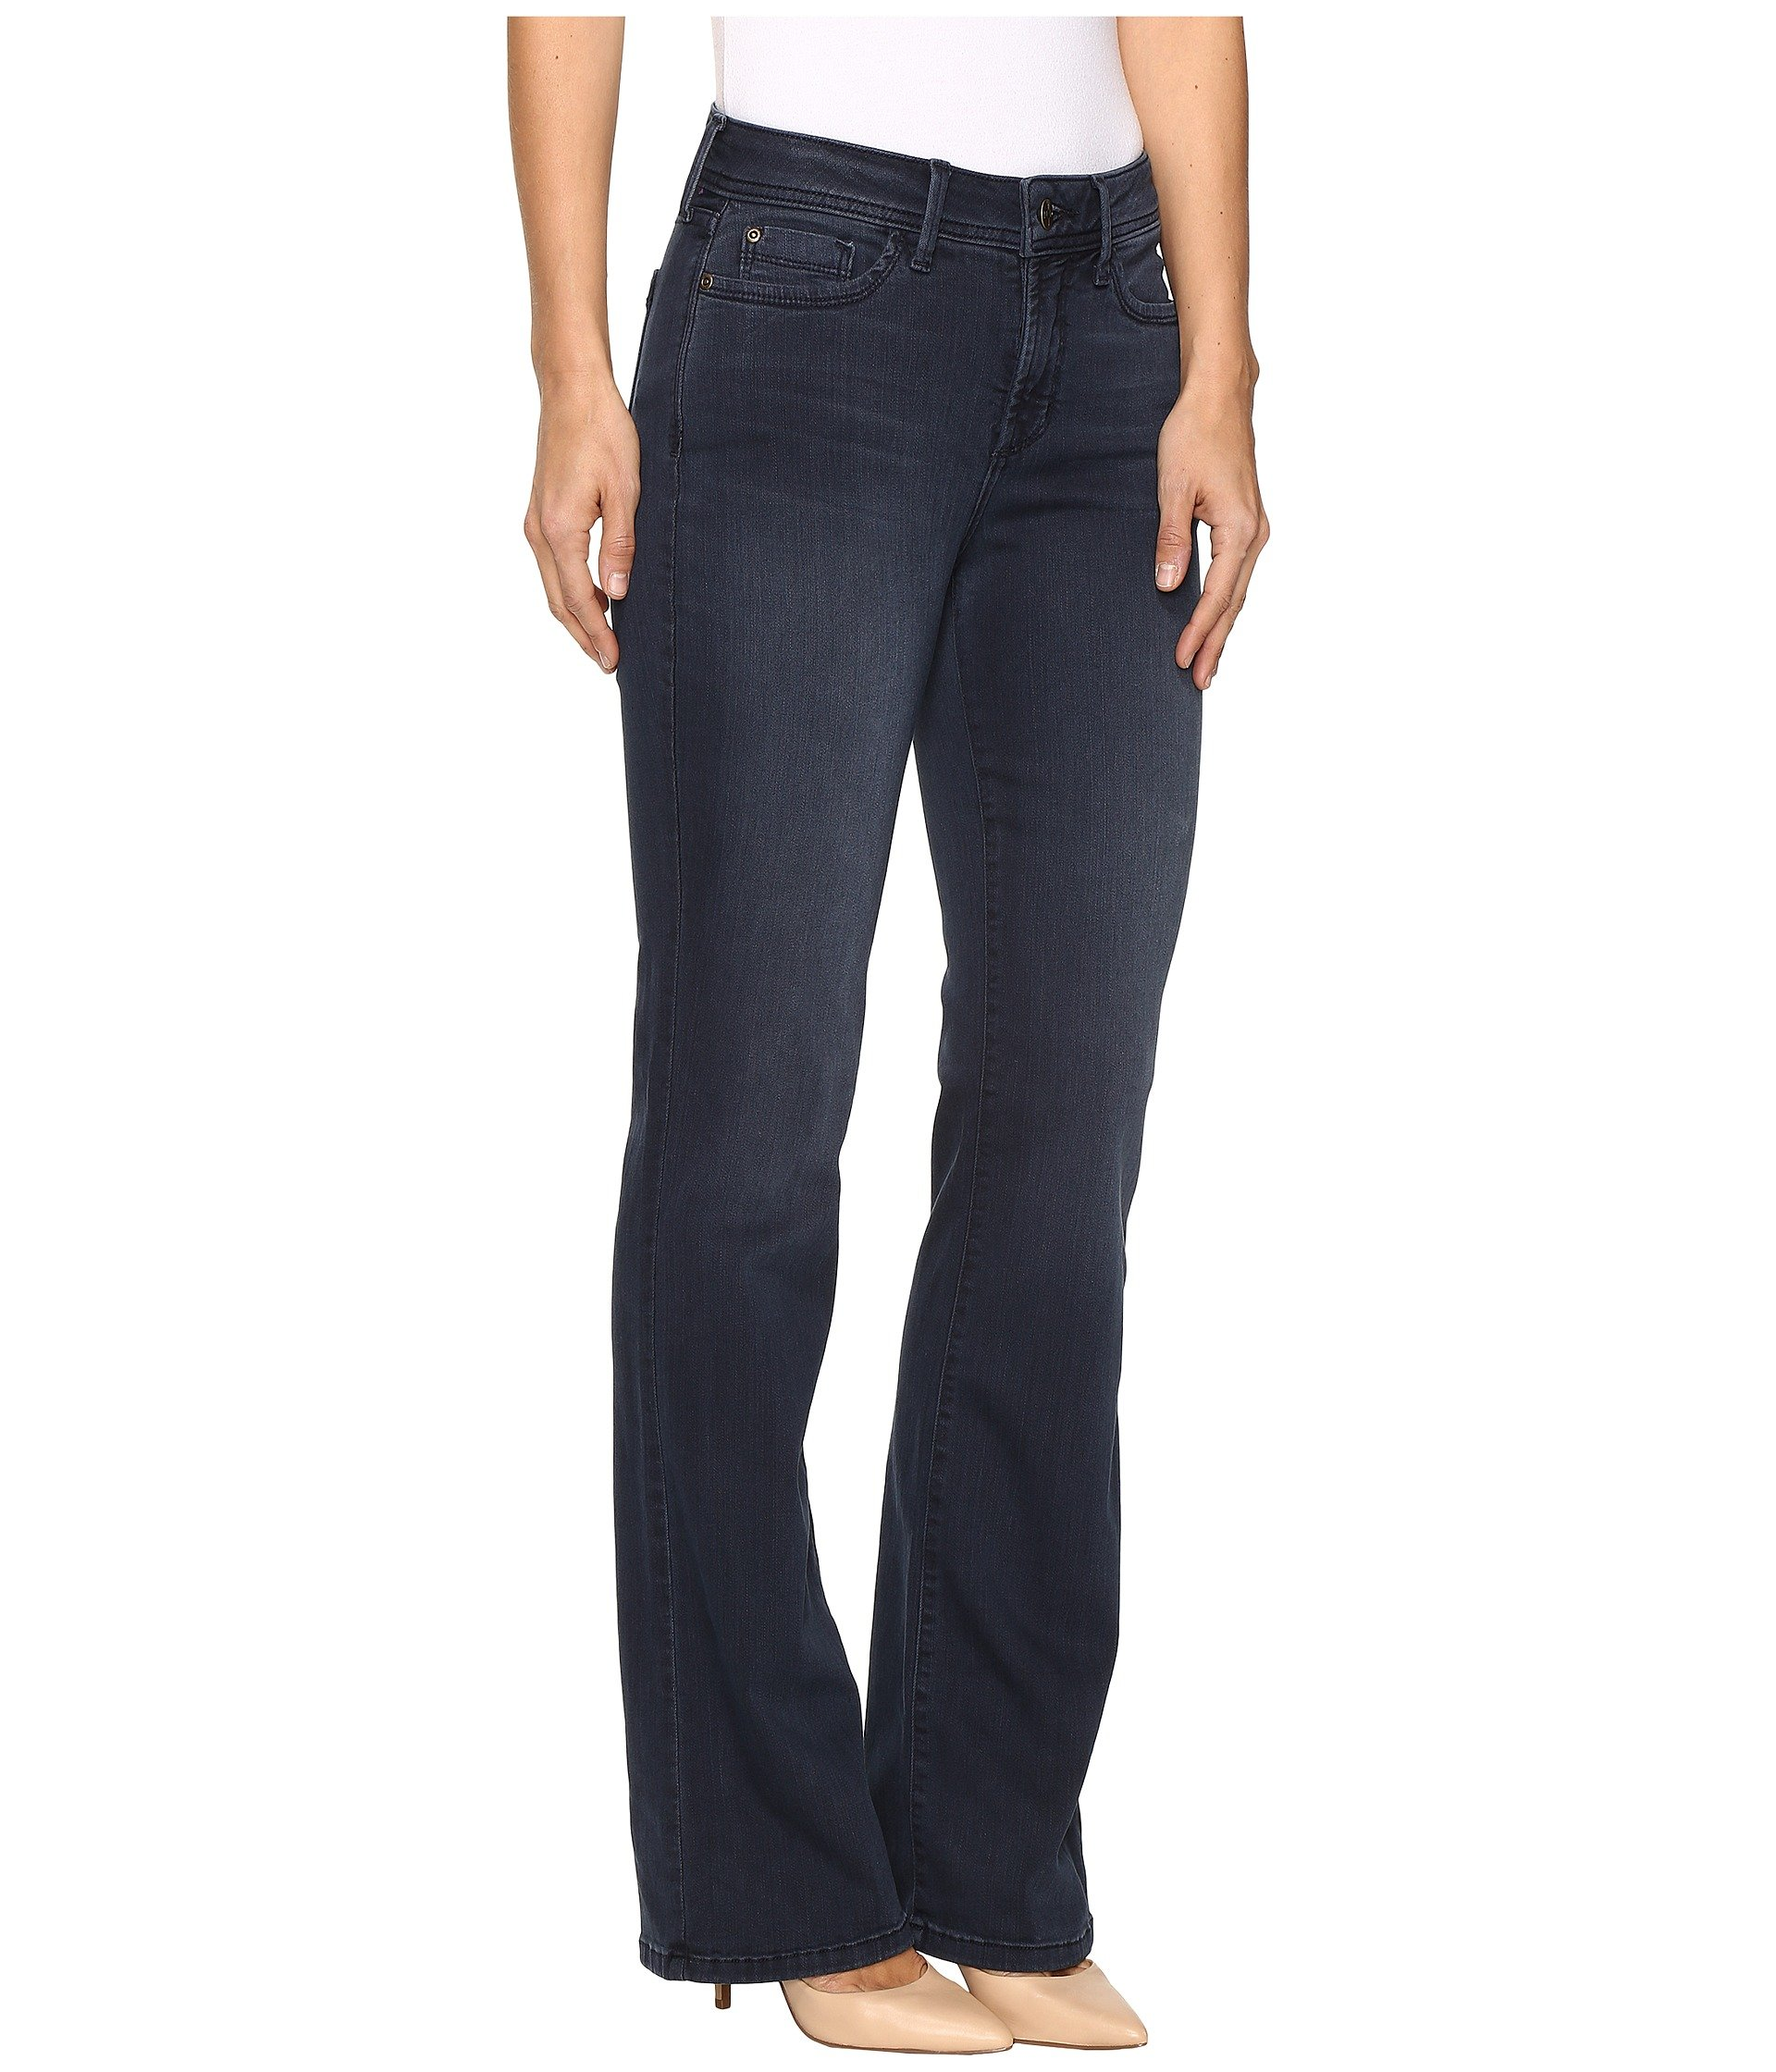 Nydj barbara modern bootcut jeans reviews